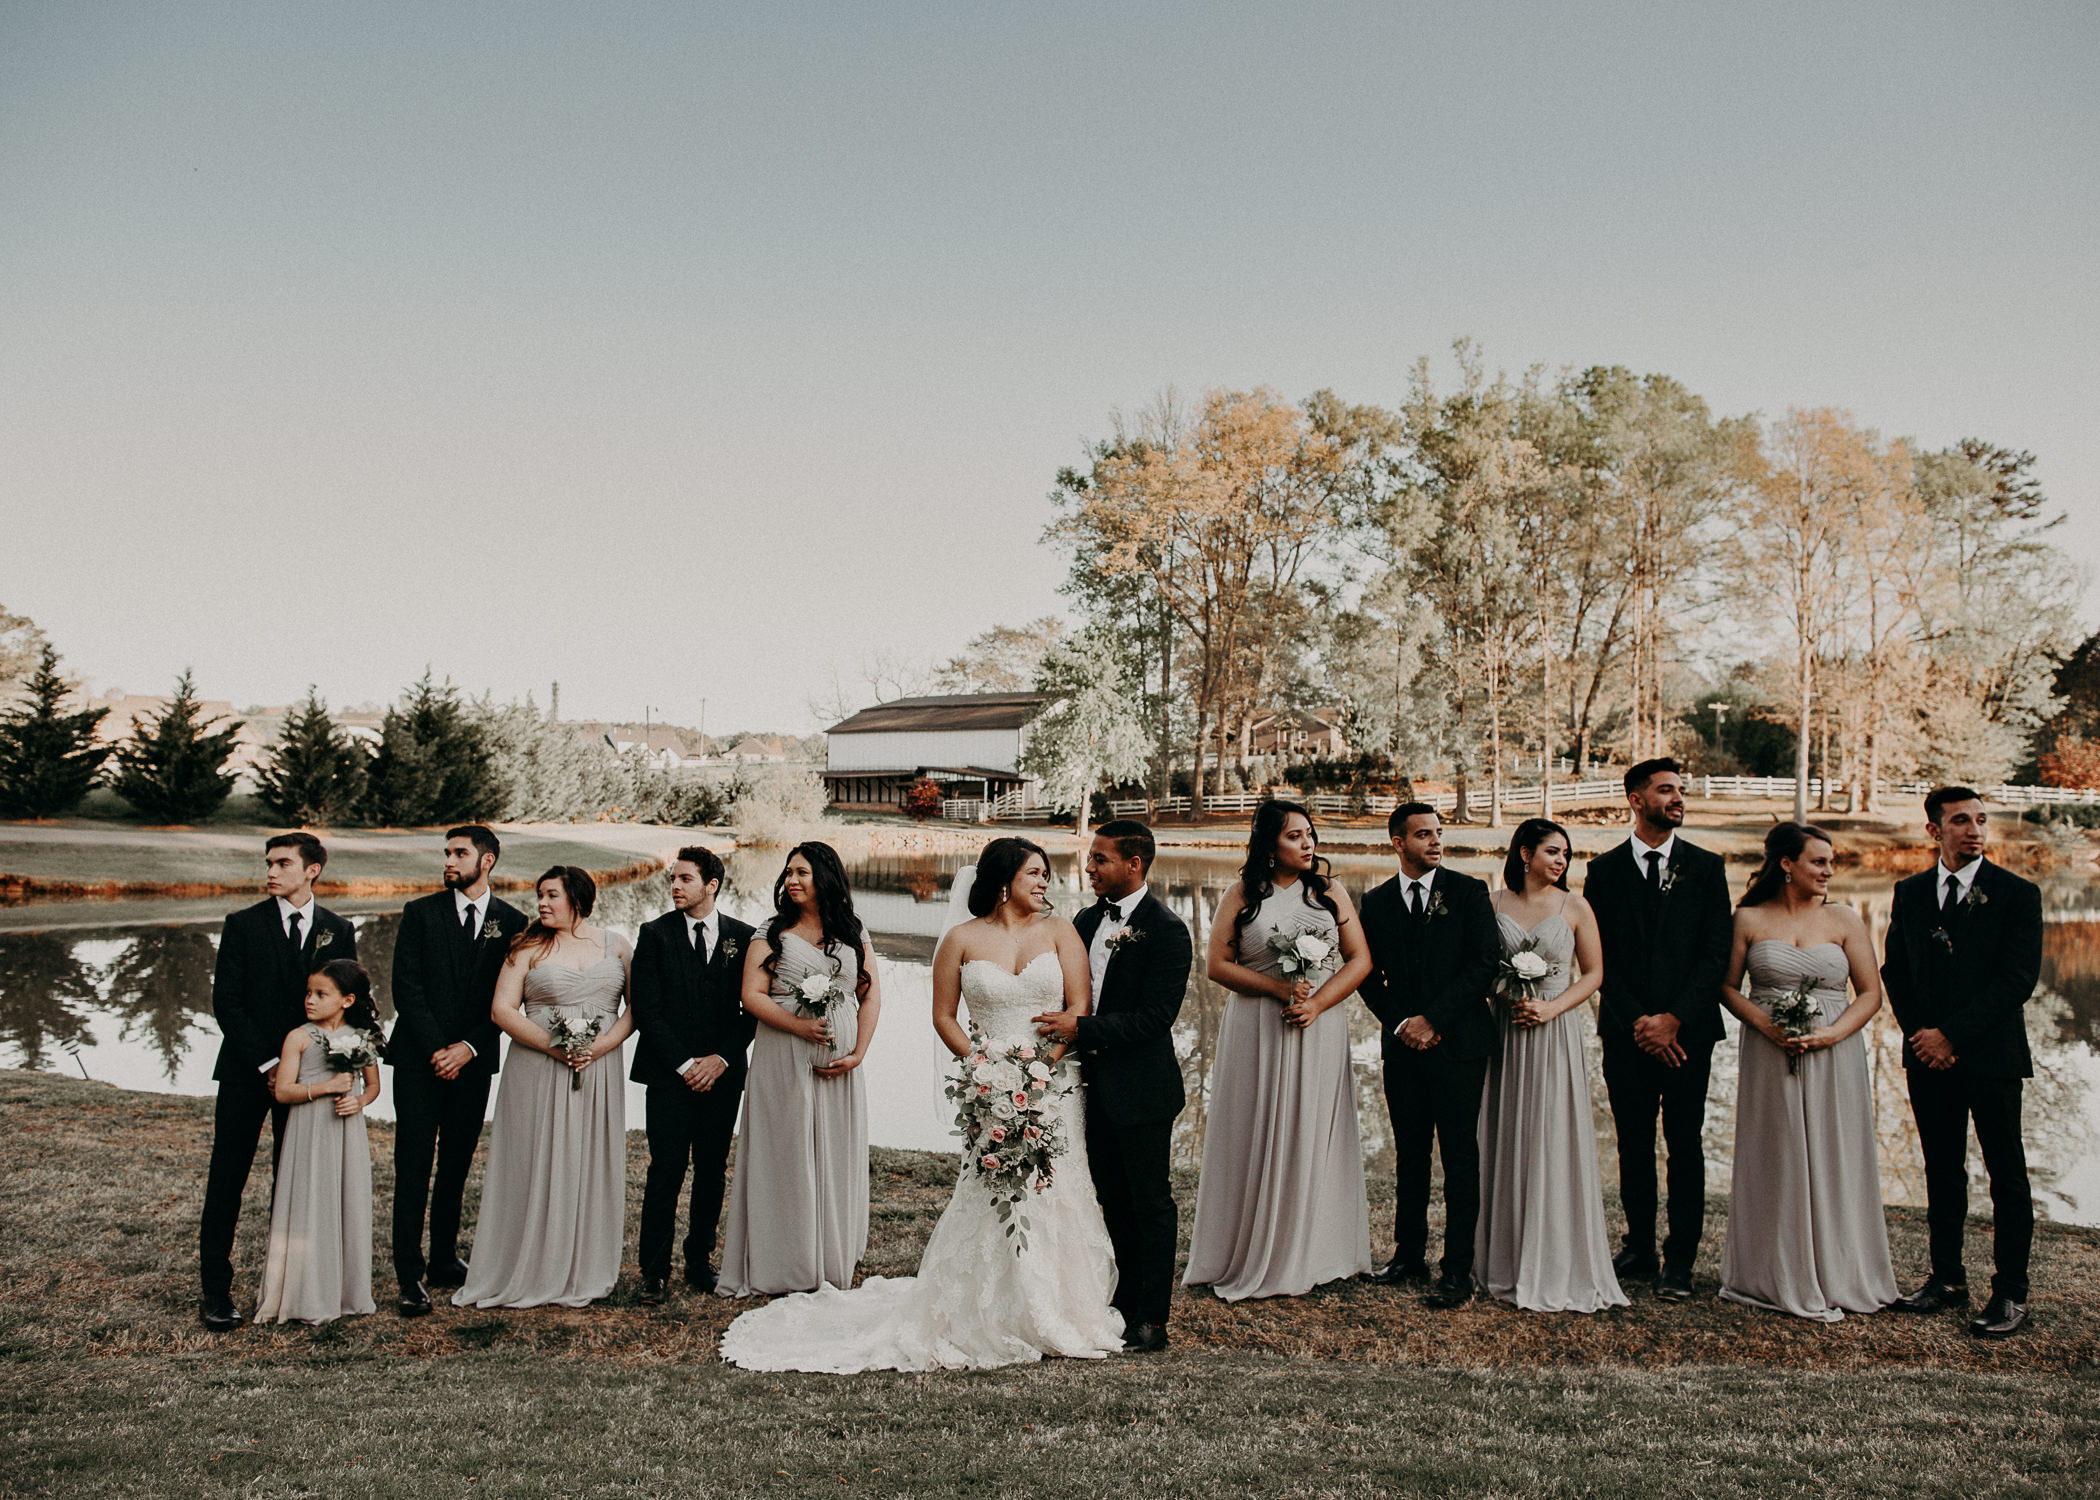 45  - Little River Farms - first look - Atlanta - Wedding Venue - Atlanta Wedding Photographer - Georgia weddings details wedding dress shoes gather groom bridal party .jpg